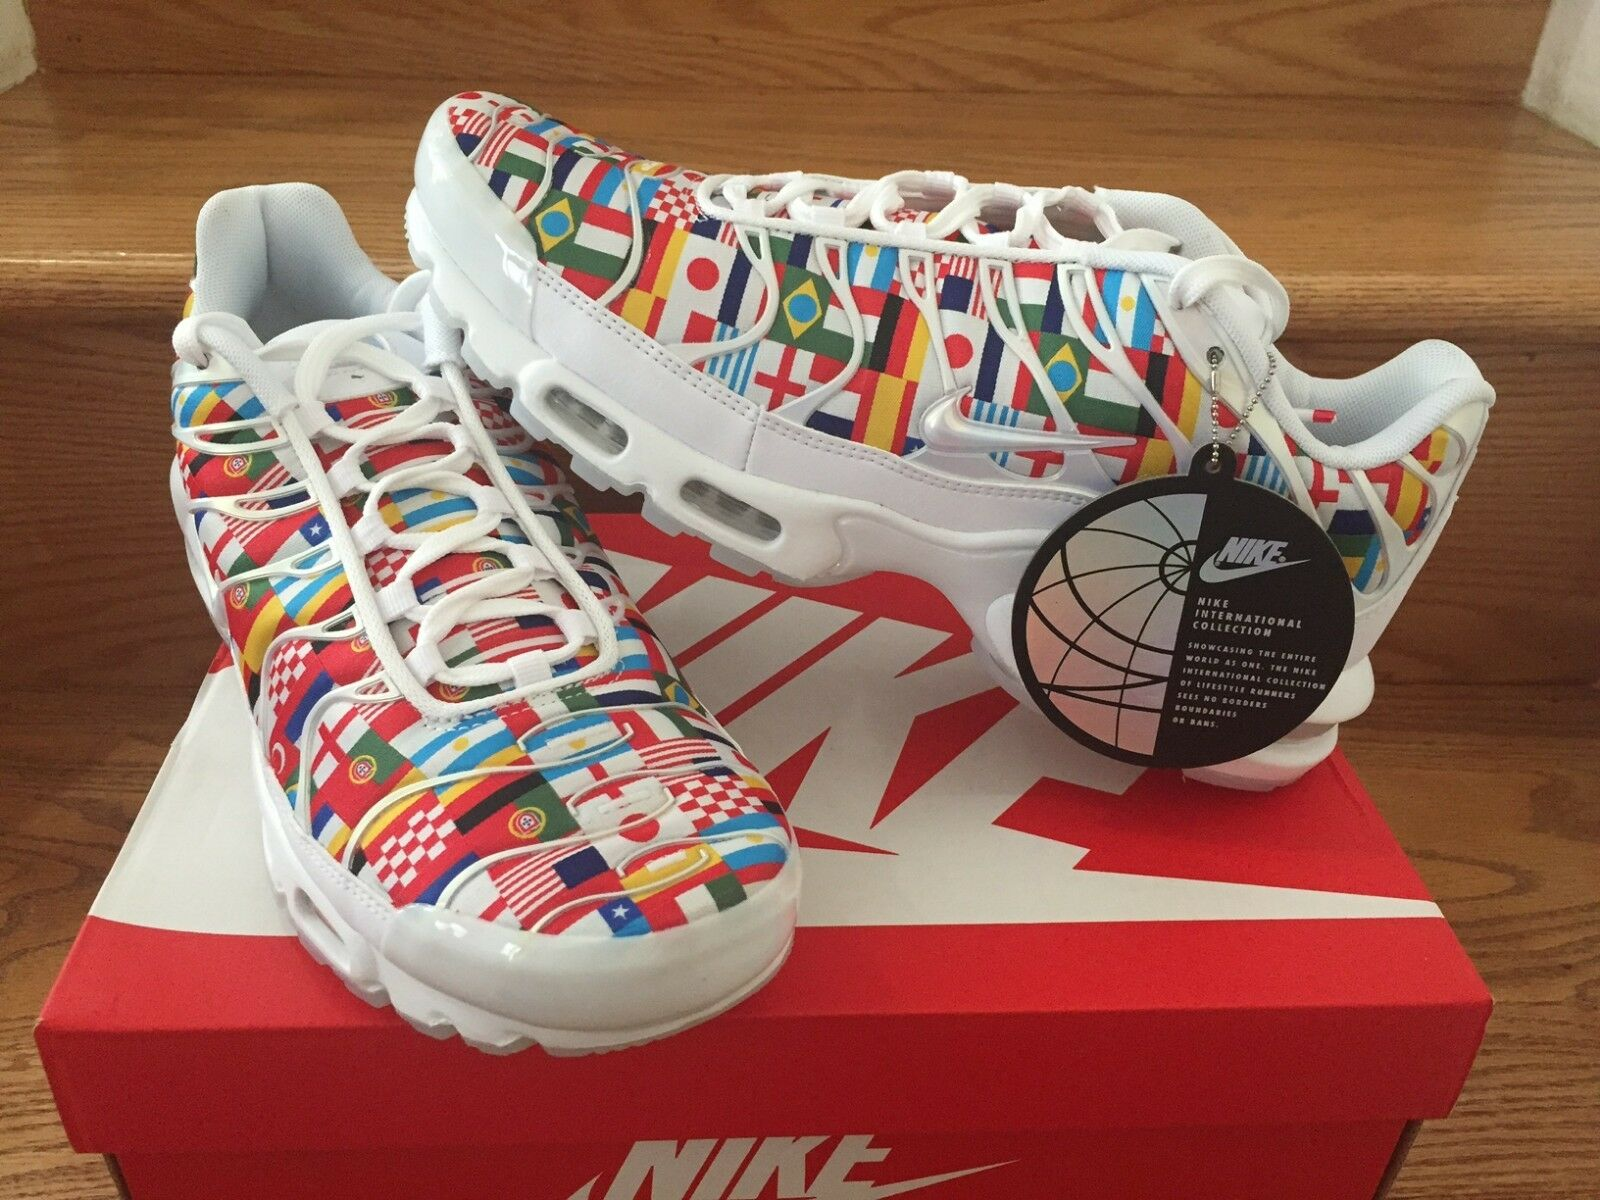 Nike Air Max Plus NIC AO5117-100 White Multi World Cup Flags Uomo Size 4-13 New